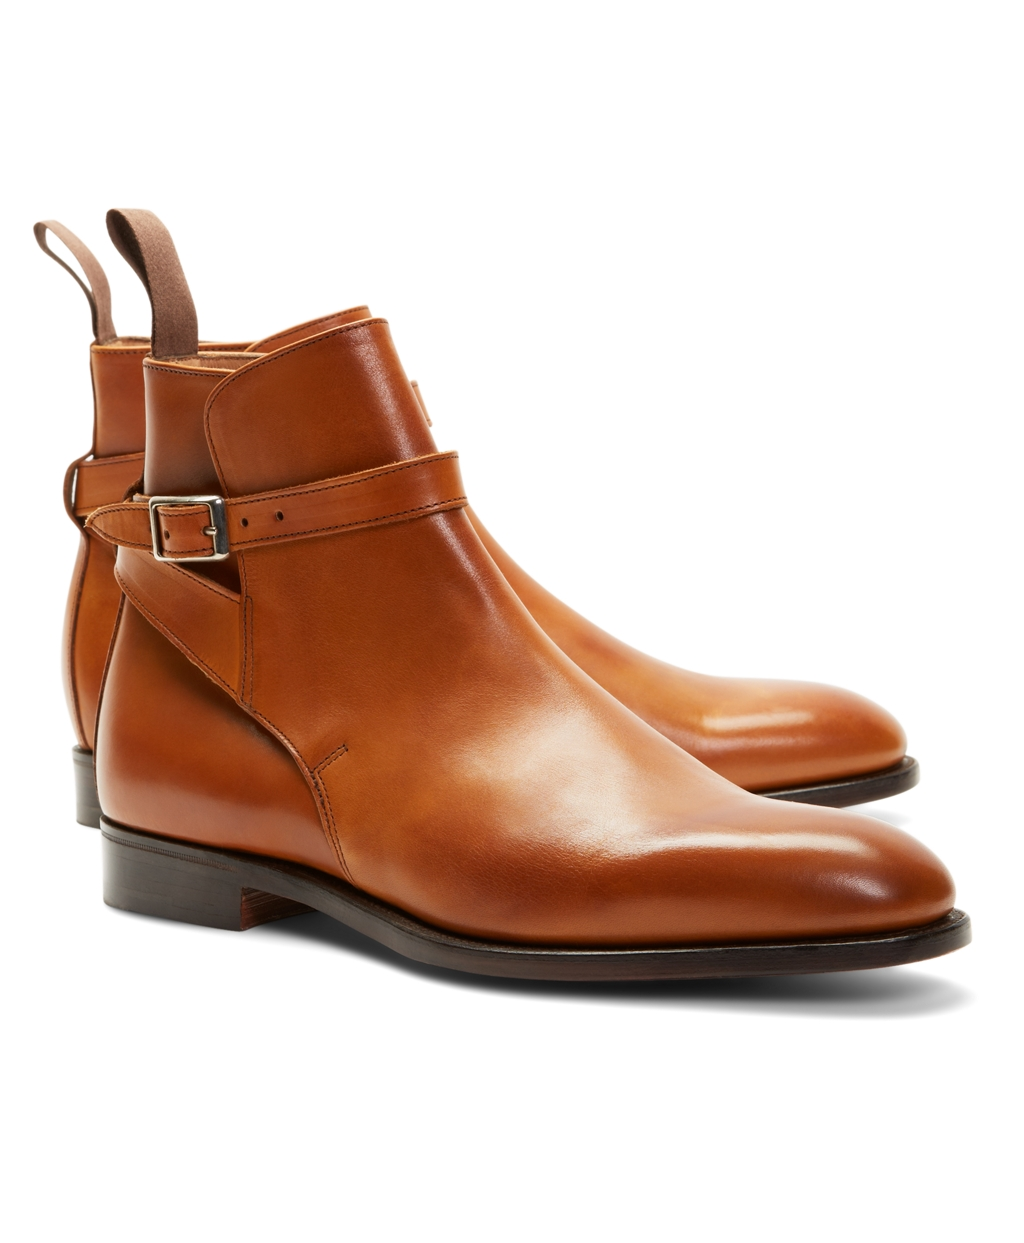 brothers peal co 174 leather ankle buckle